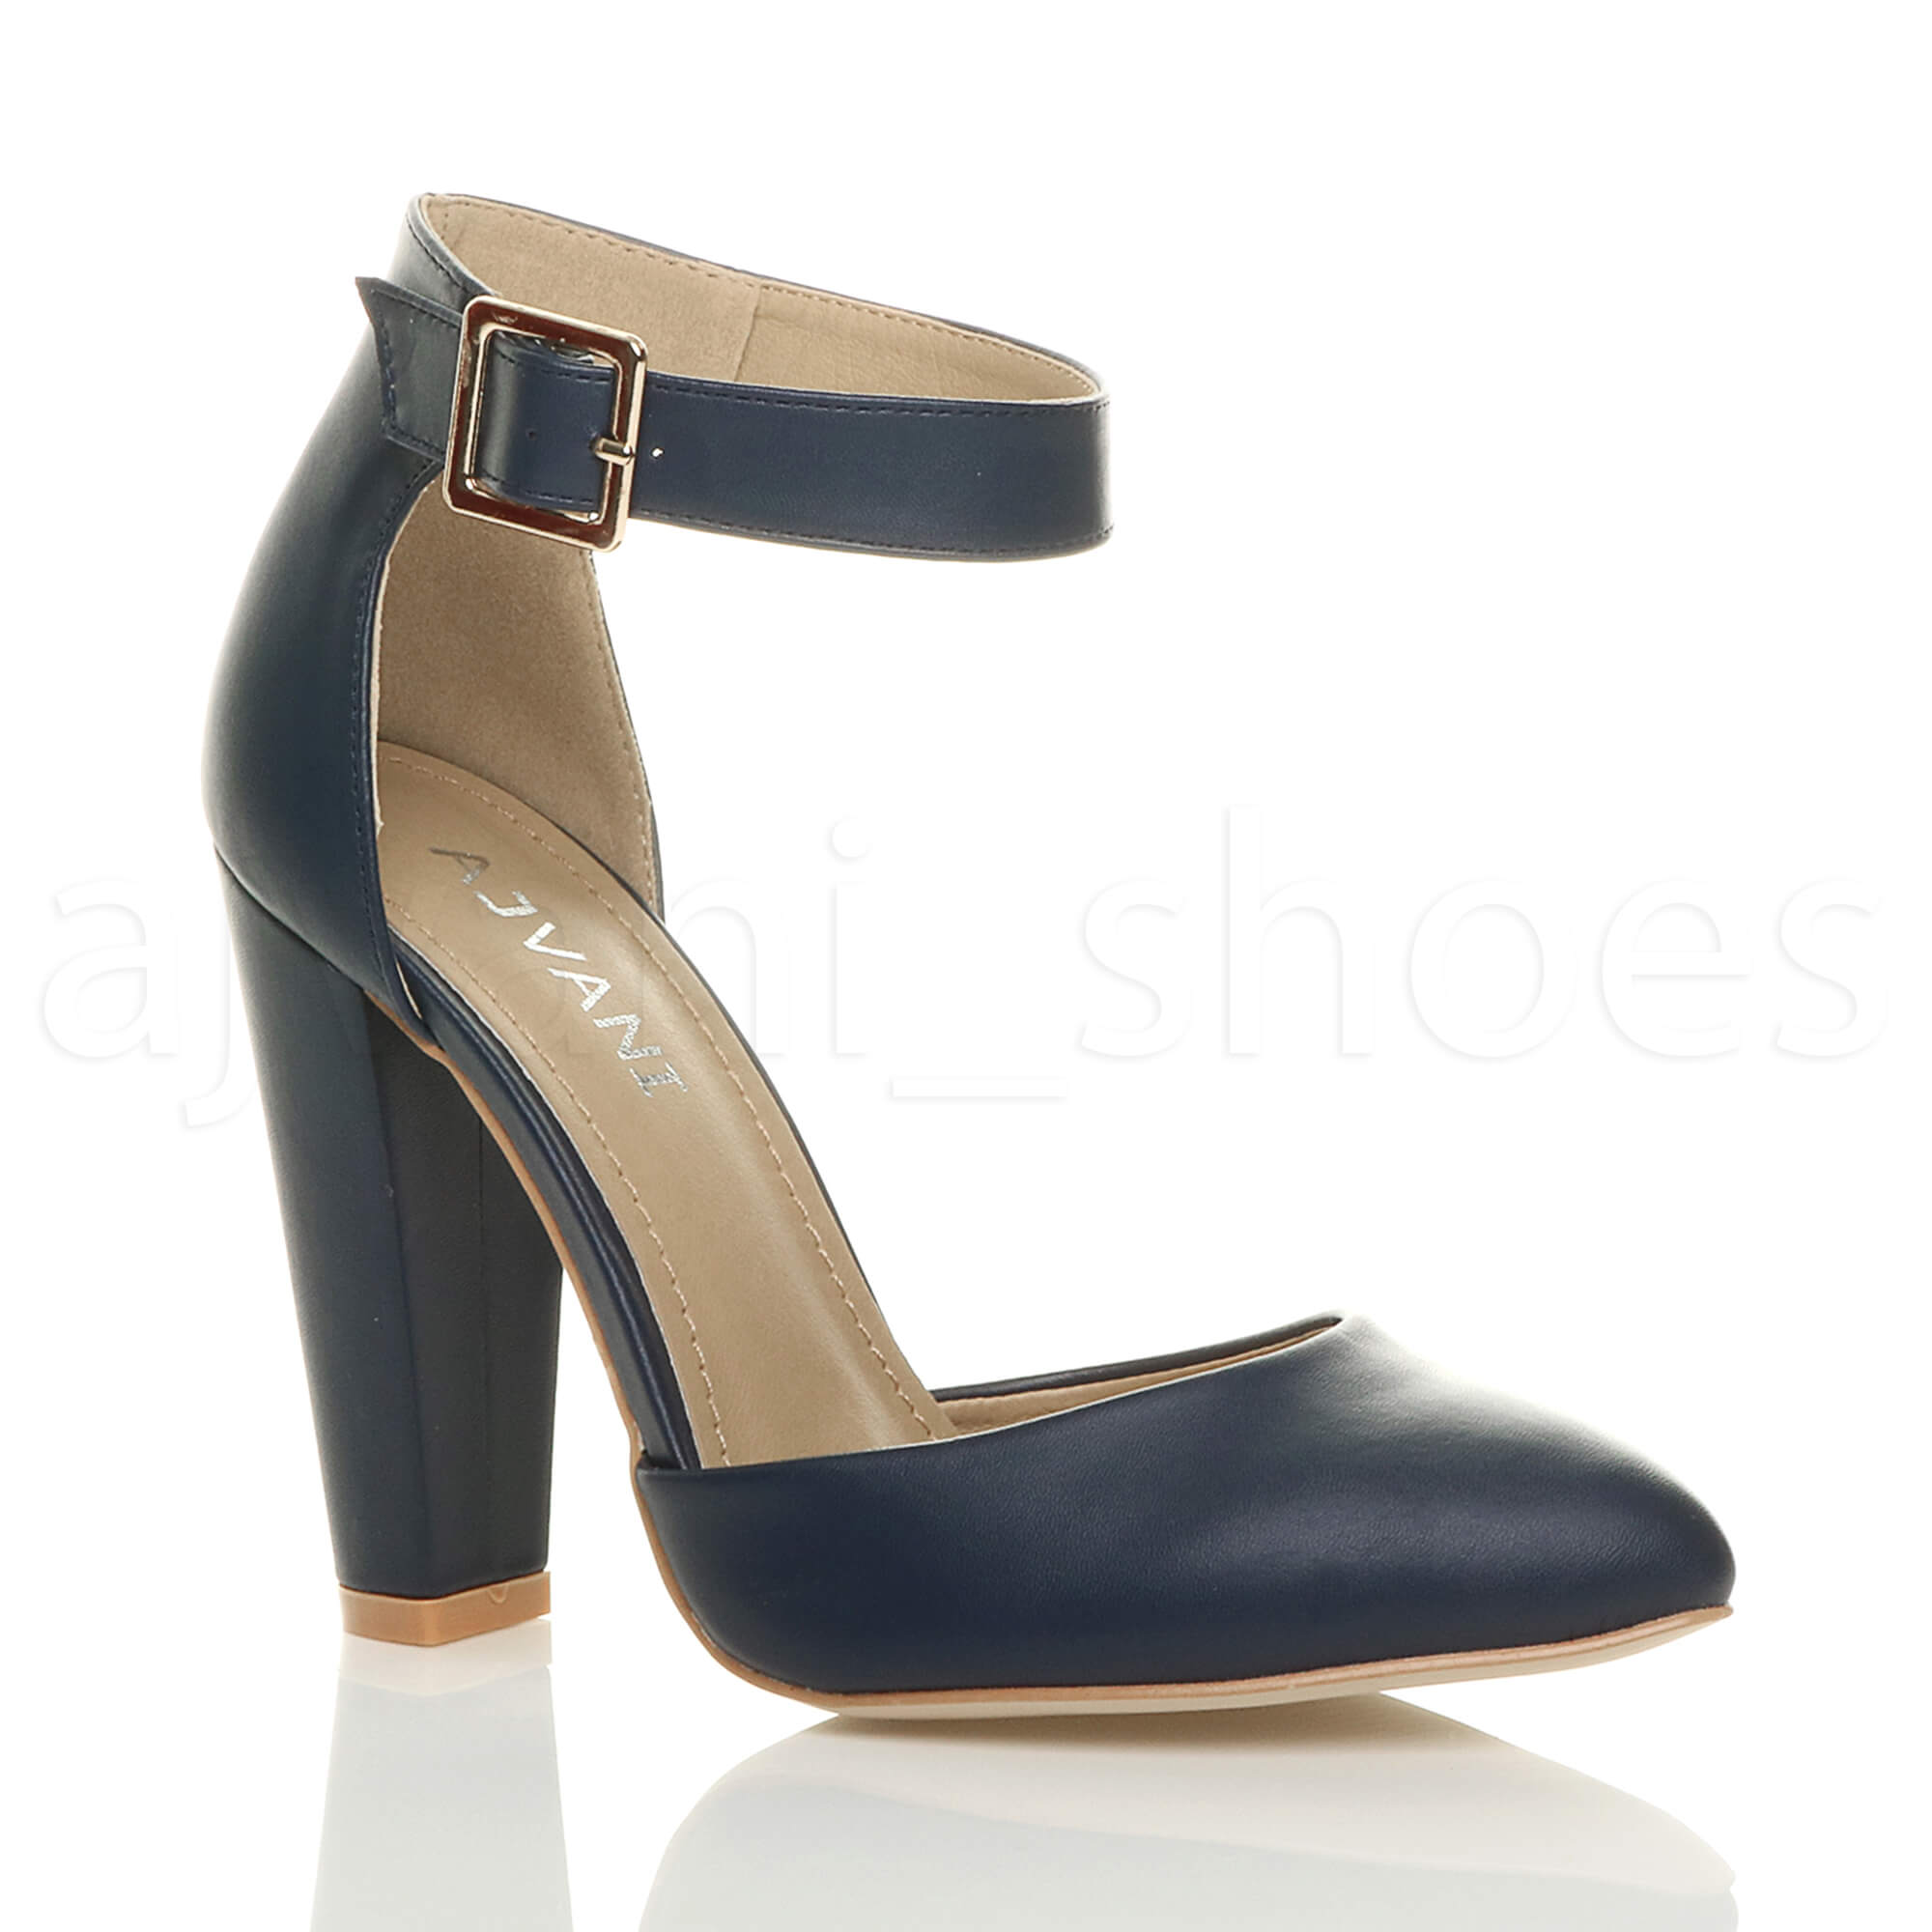 WOMENS-LADIES-HIGH-BLOCK-HEEL-ANKLE-STRAP-BUCKLE-POINTED-COURT-SHOES-SIZE